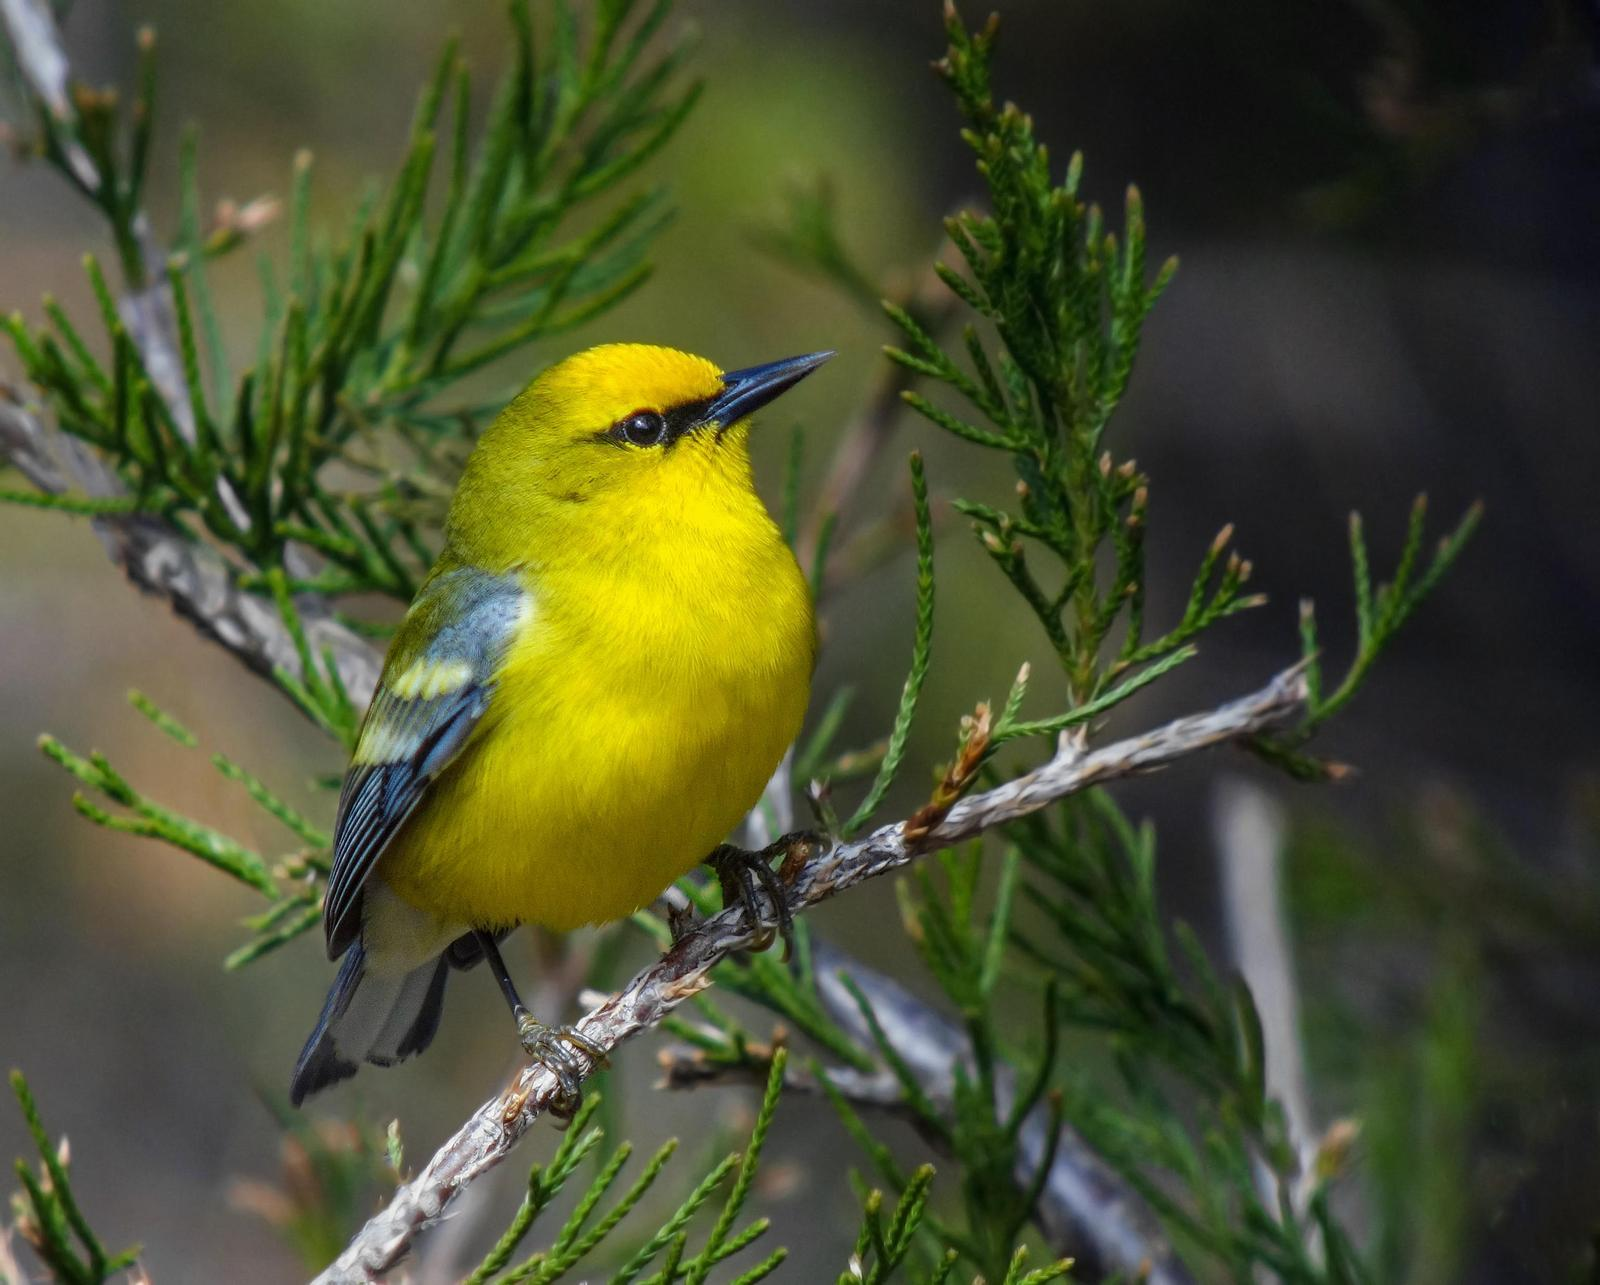 Blue-winged Warbler Photo by Joseph Pescatore